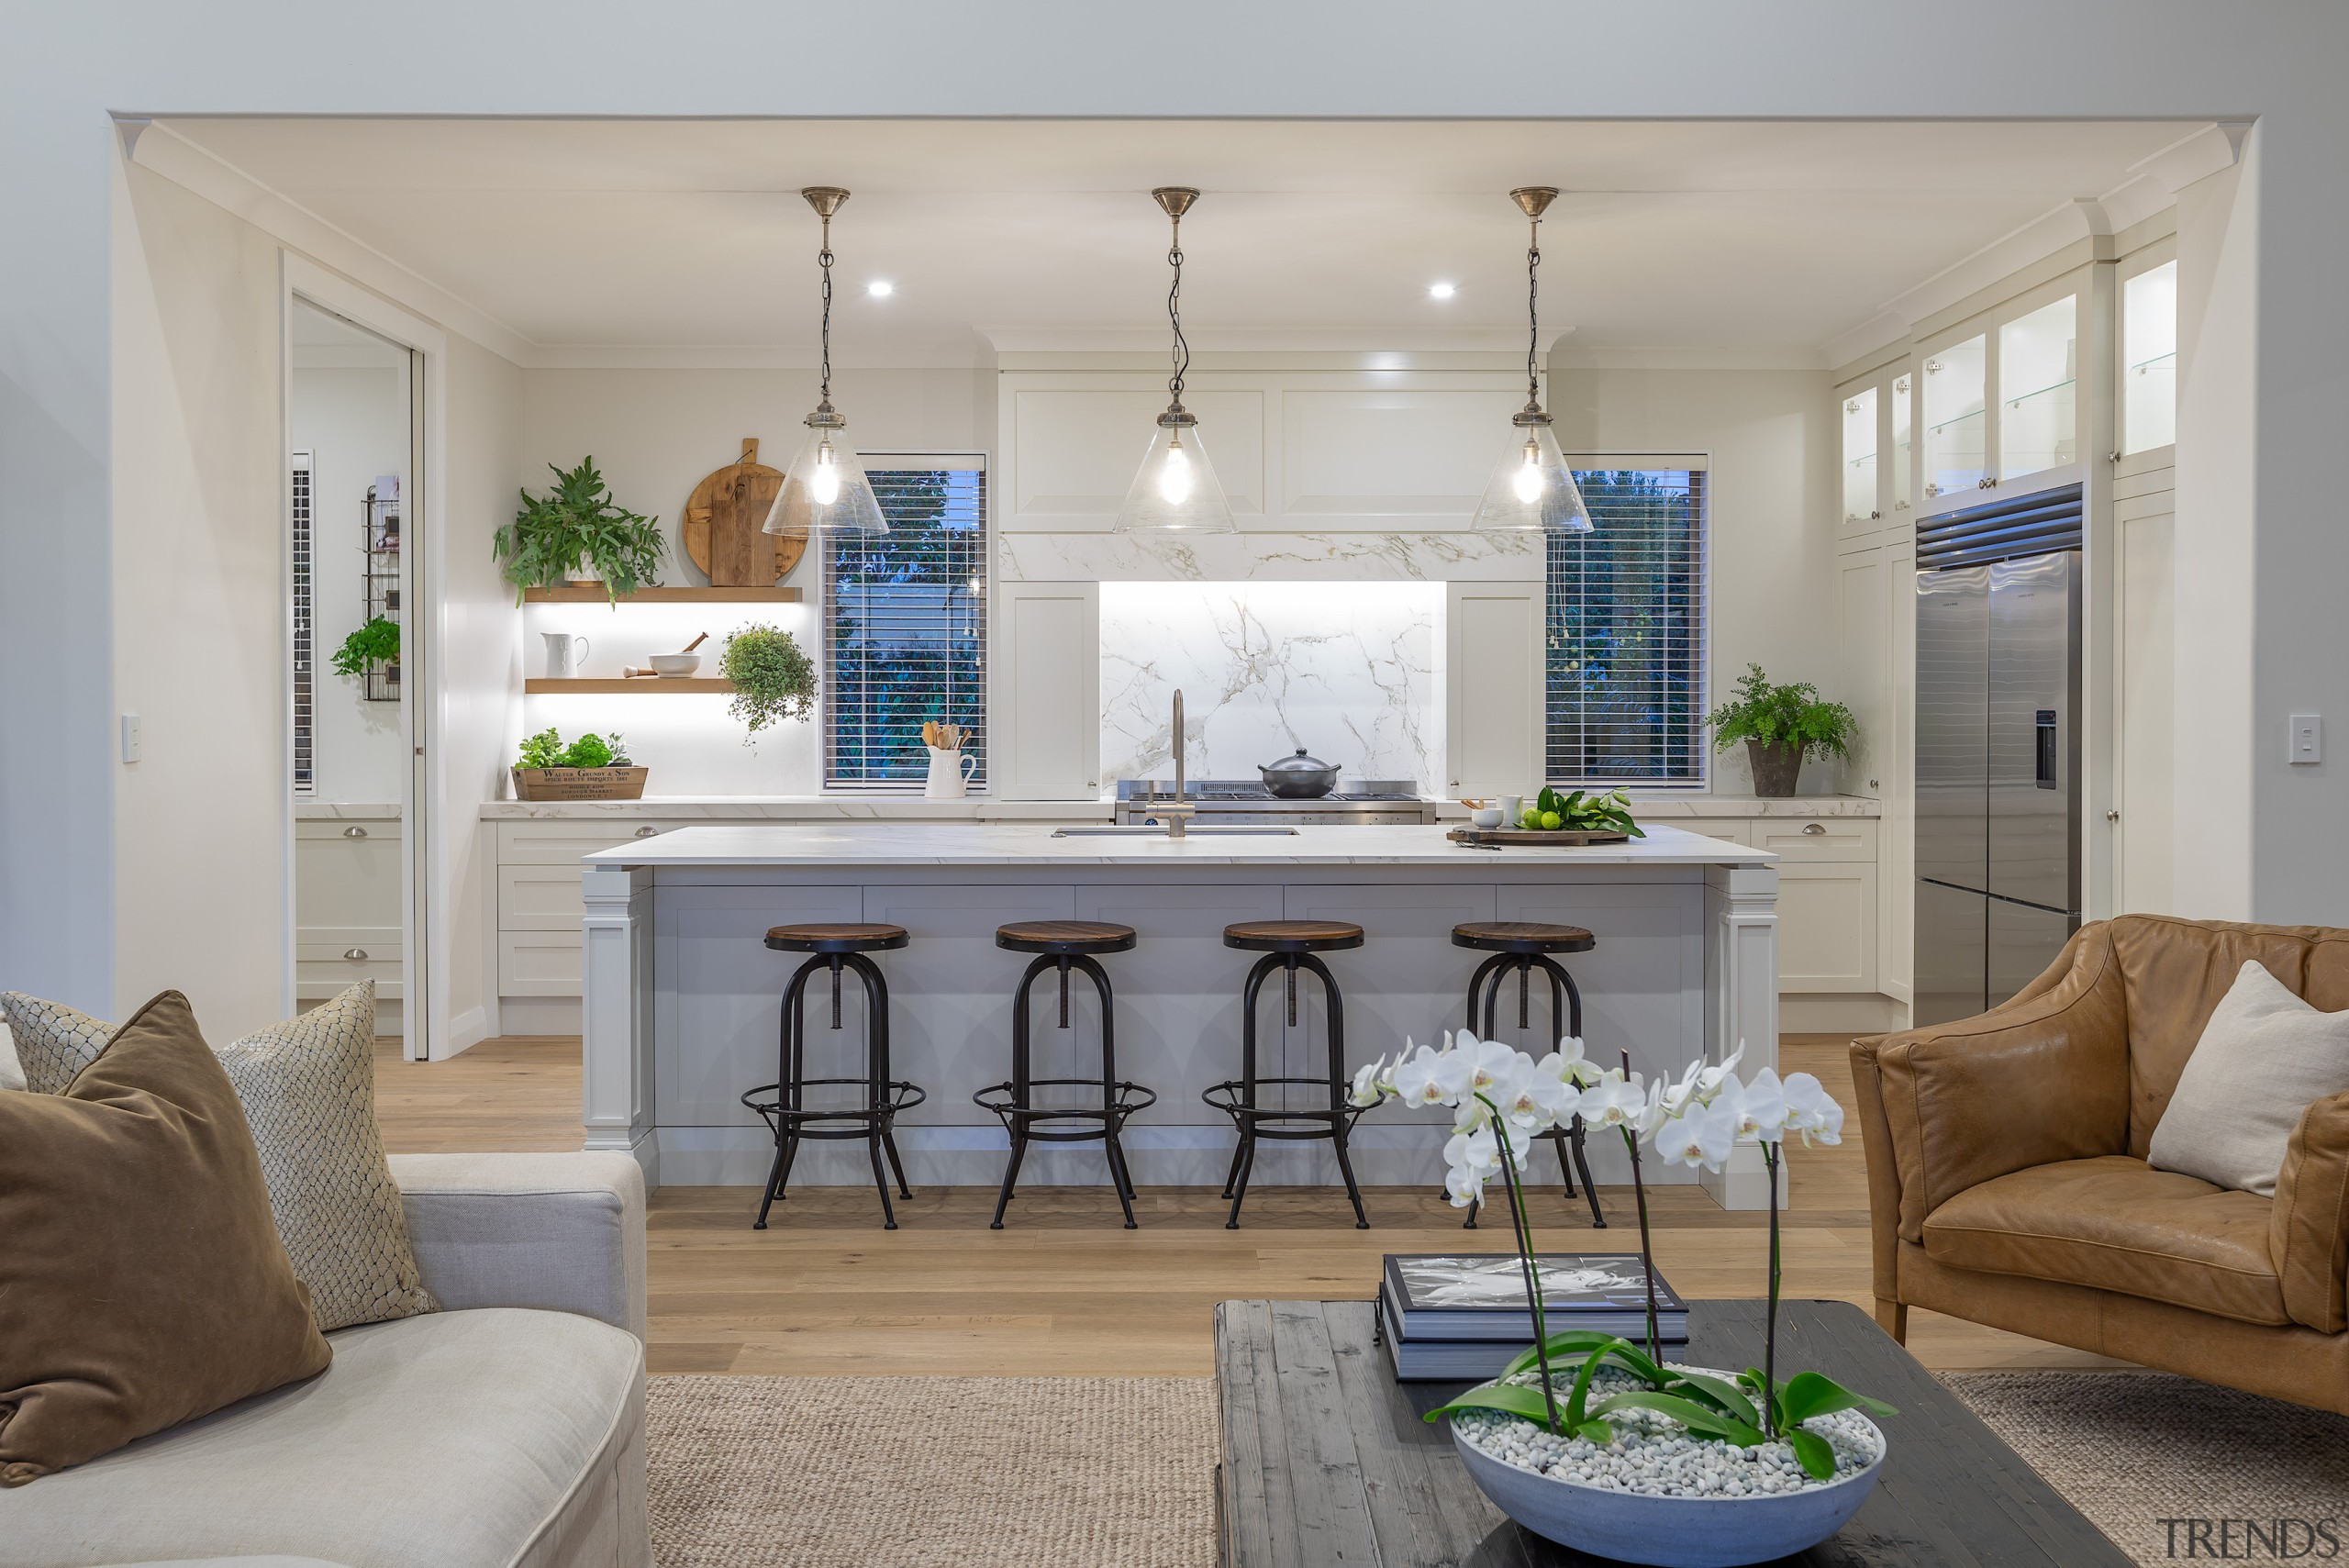 Skilled woodworking detailing on the well-equipped kitchen is